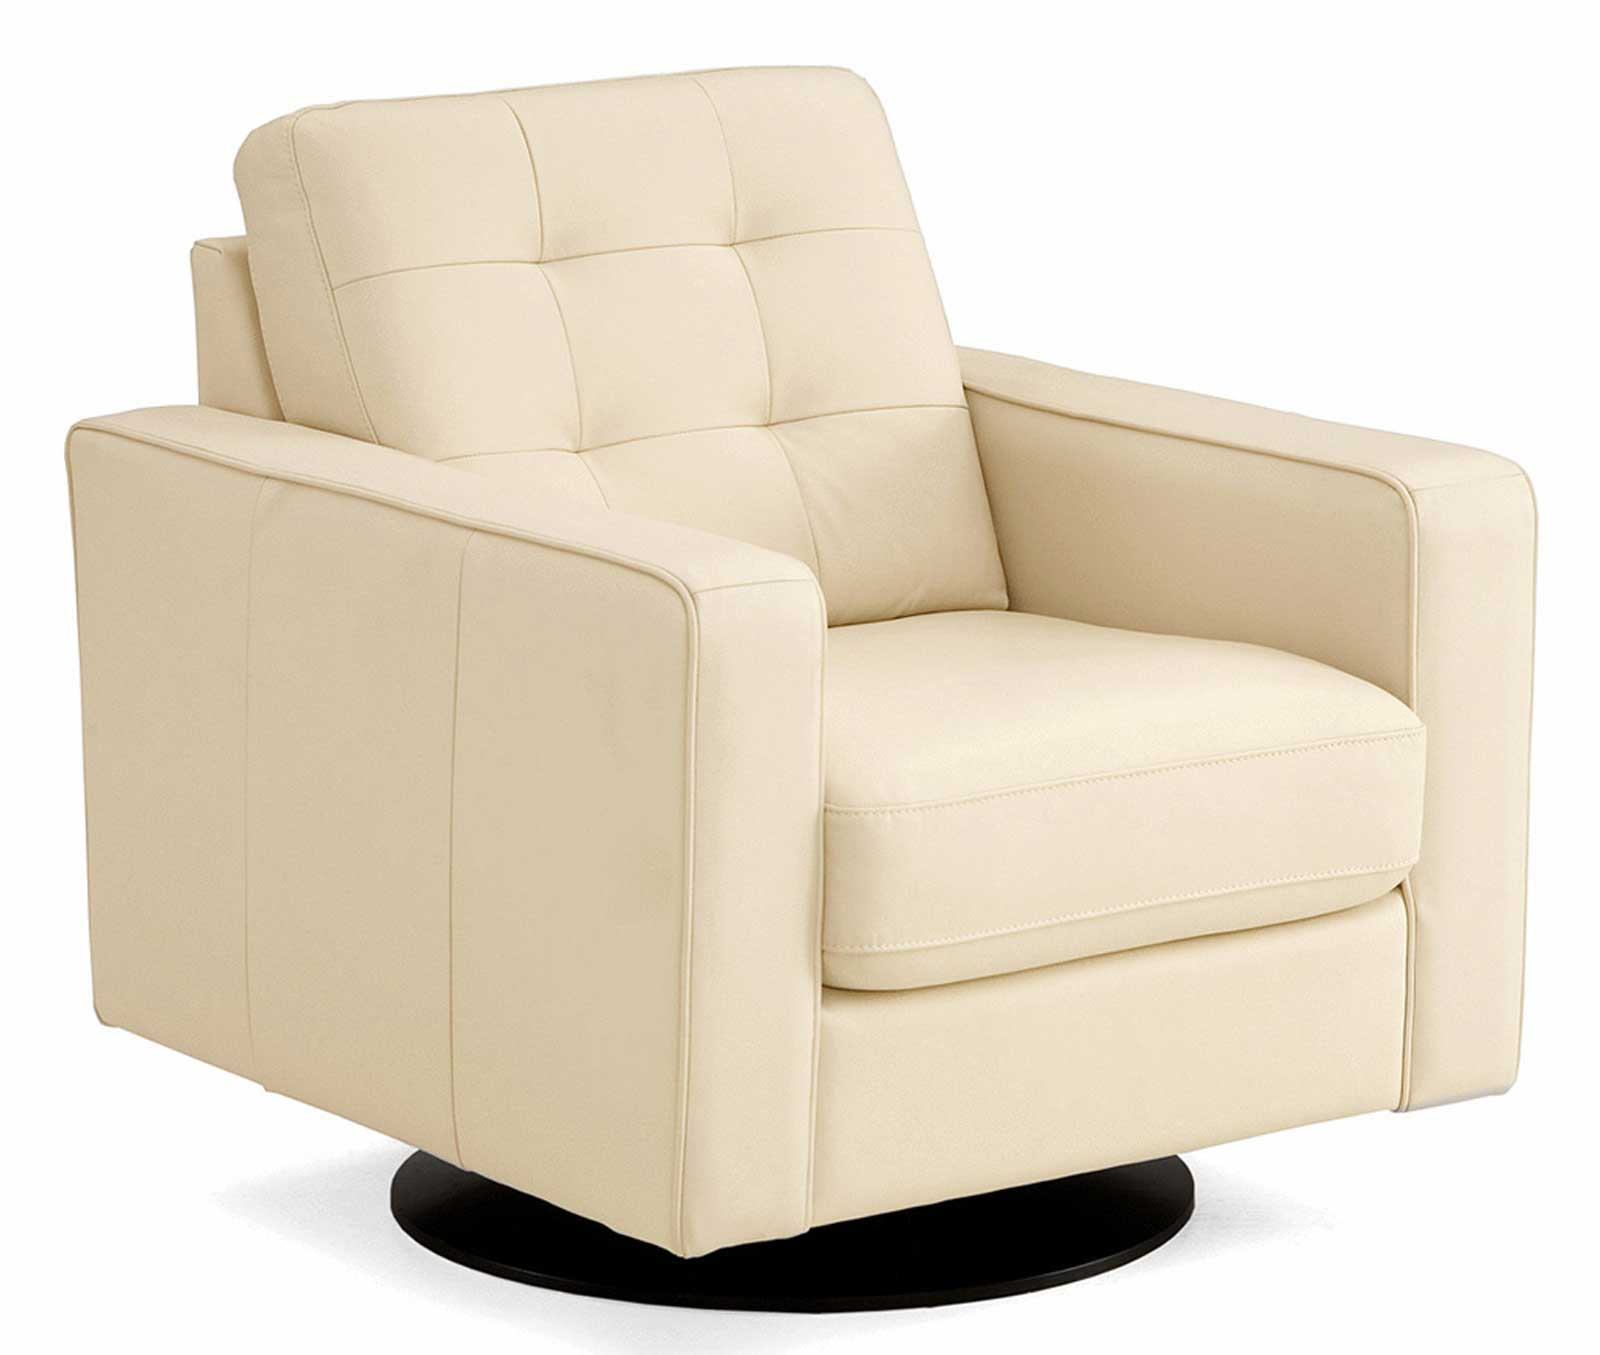 Swivel chairs related keywords amp suggestions swivel chairs long tail